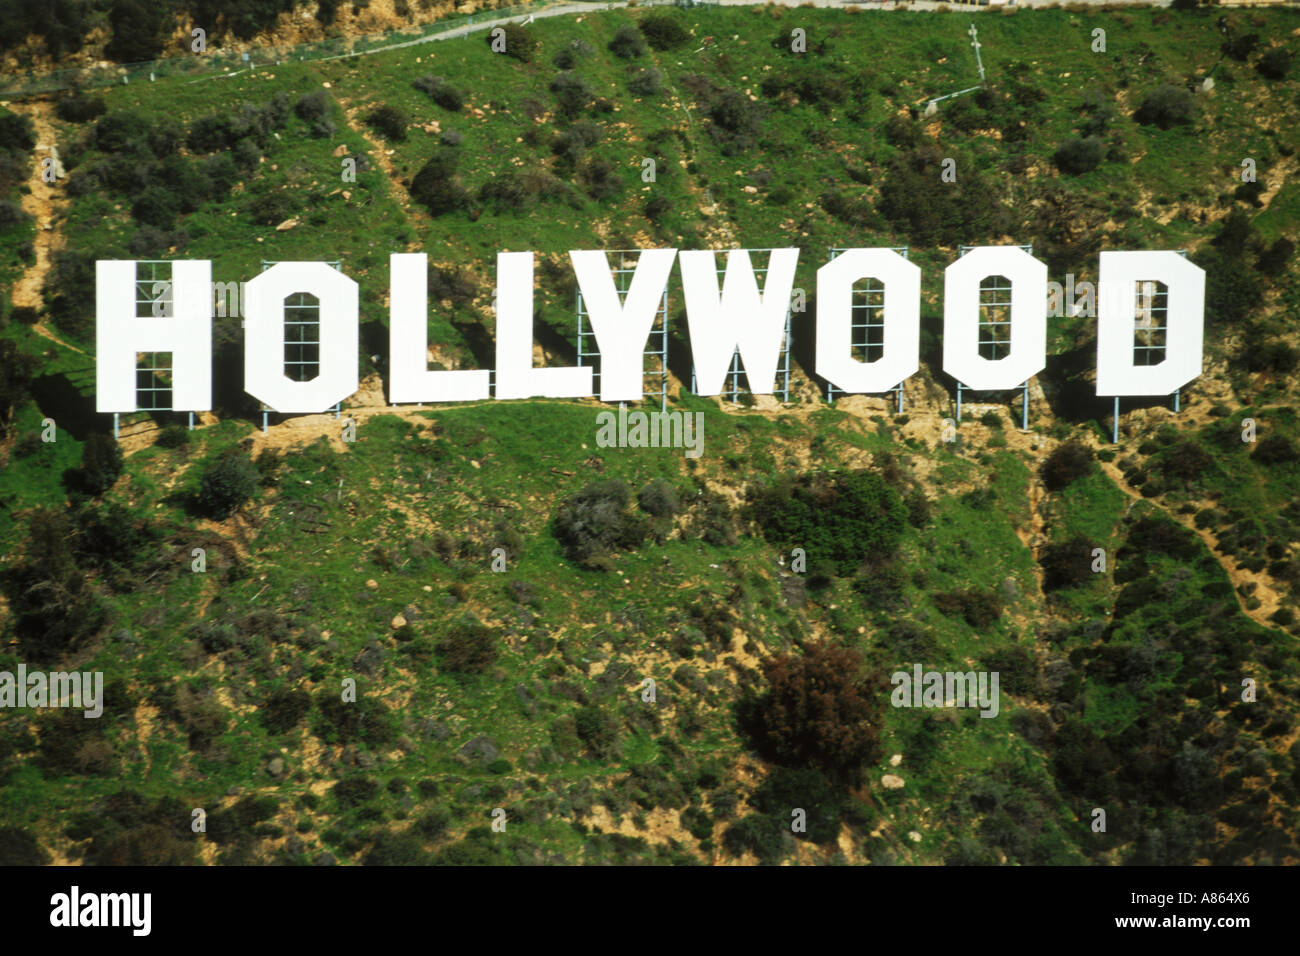 Aerial view of Hollywood sign in Hollywood Hills, California - Stock Image